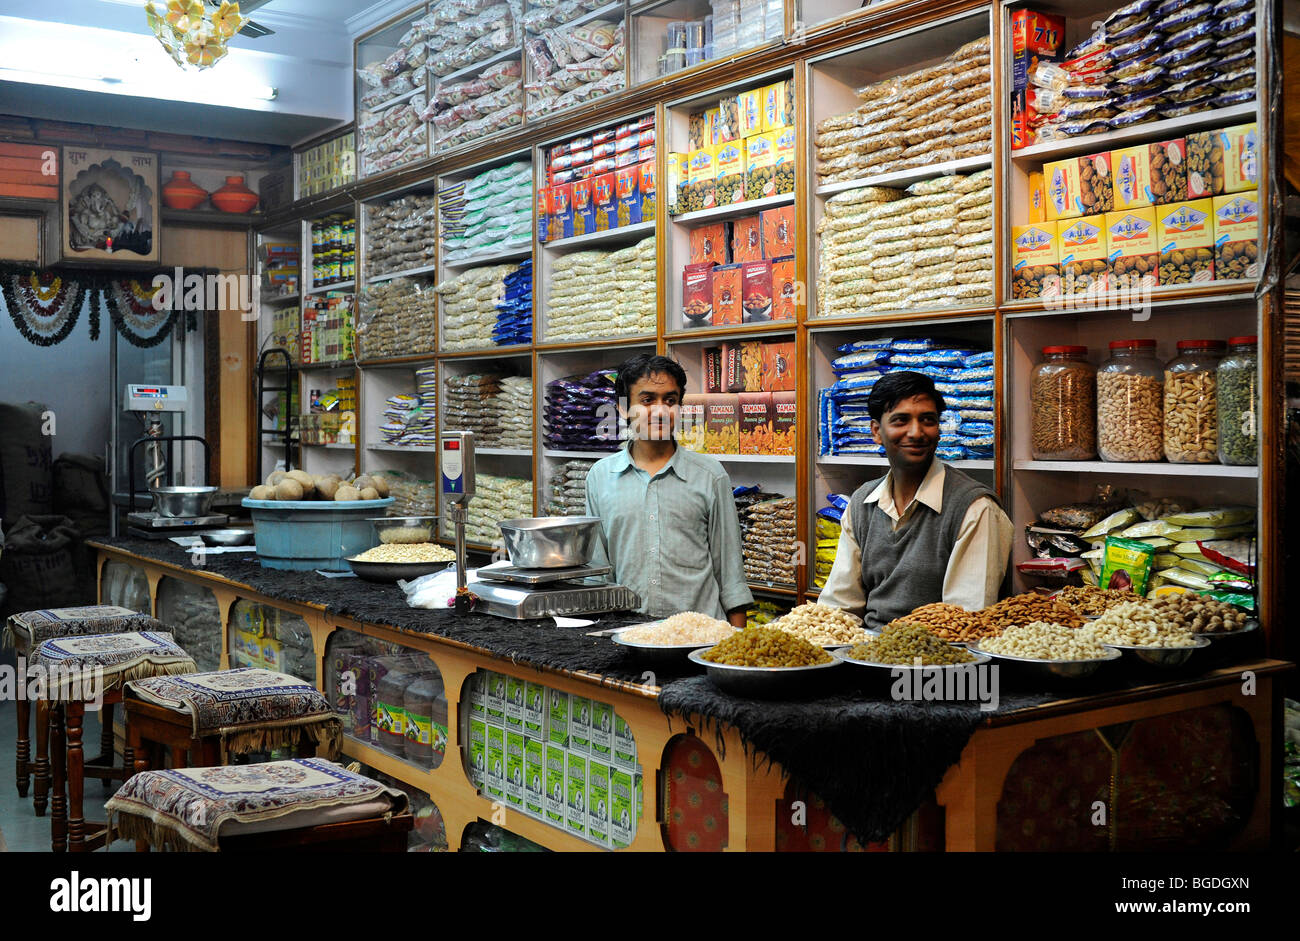 food and grocery retailing in india They are hoping that besides brick-and-mortar stores, the government will allow online retailing of food products and will also expand the definition of food to include grocery iyer, who joined the indian unit of the world's largest retailer two years ago, said food items along with home and personal care products would make the model more.